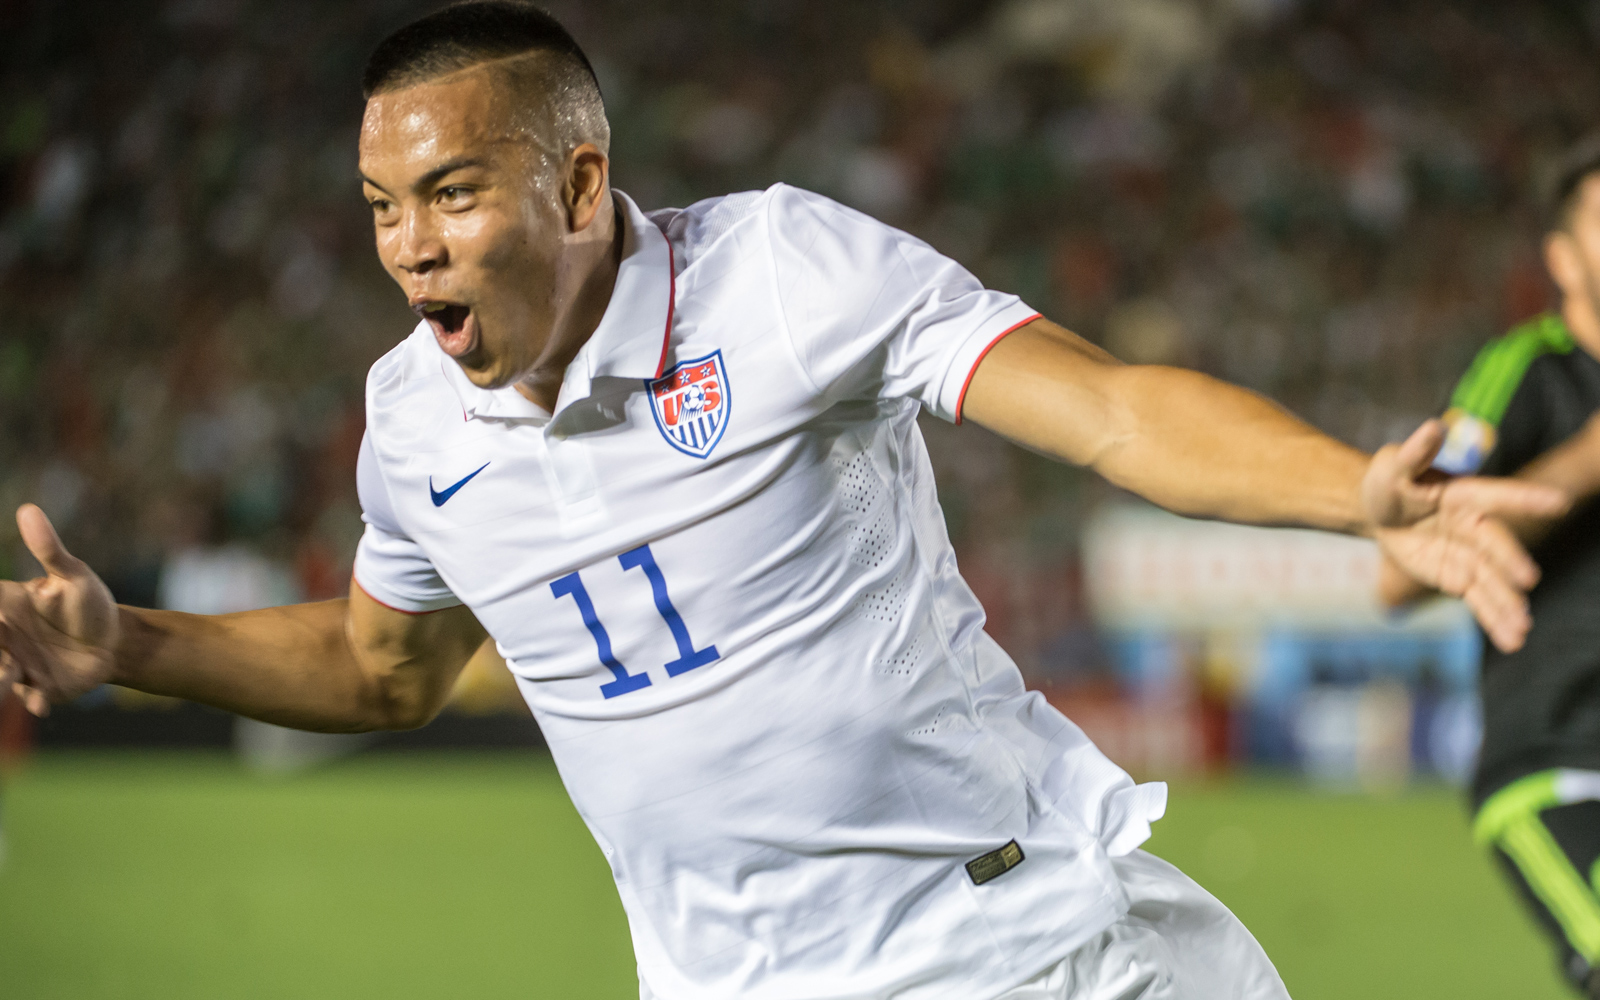 U.S. forward Bobby Wood celebrates his 108th-minute goal vs. Mexico that brought the Americans level at 2-2 after Oribe Peralta had given El Tri the lead in extra time. That reprieve would only last for 10 minutes, though.